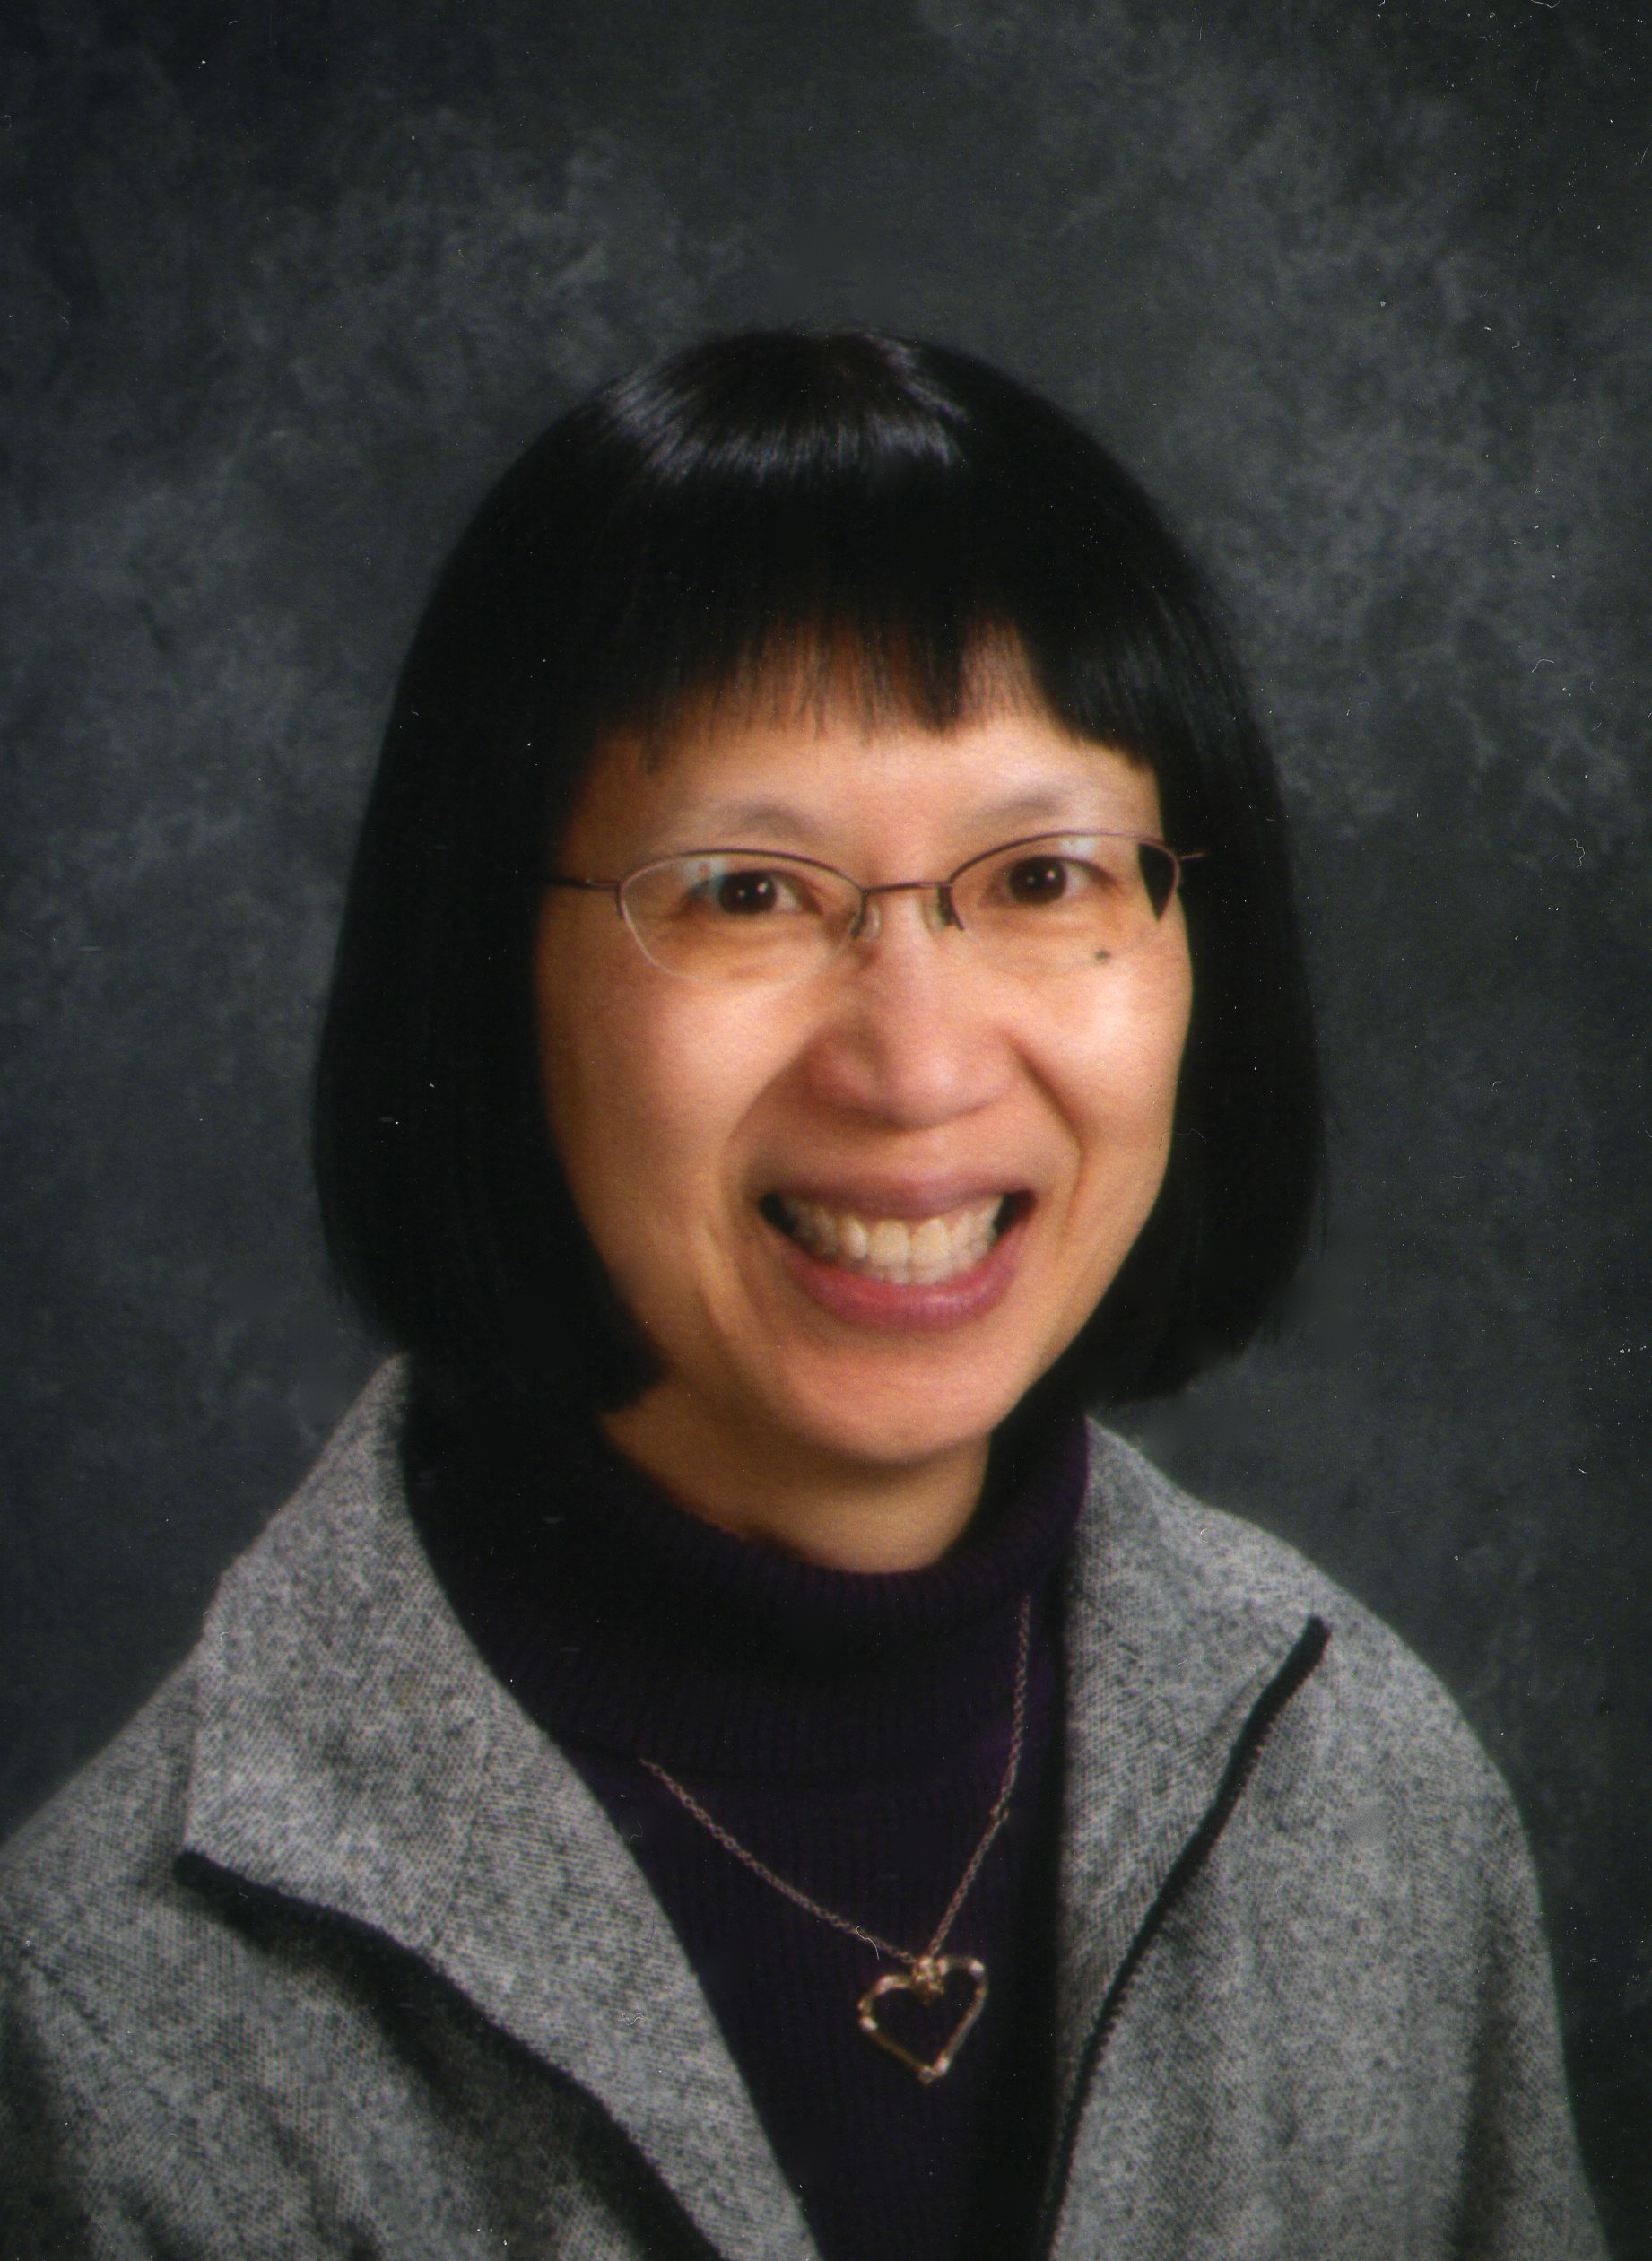 Darlene Ngo - Darlene Ngo (October 21, 1955 – May 20, 2014) was a respected teacher, leader and colleague. A kind and gentle spirit, she taught with positive encouragement, and looked forward to teaching every day. Darlene was president of the B.C. and then National Kodály Society of Canada, and taught other music teachers at both seminars, and at the University of Victoria. A memorial fund has been established in partnership with the Vancouver Foundation and the Kodály Society of Canada to continue her legacy by providing funds for scholarships, clinician support, educational materials and music-related equipment. Tax creditable donations are welcome via the following link.TAX CREDIT INFORMATION